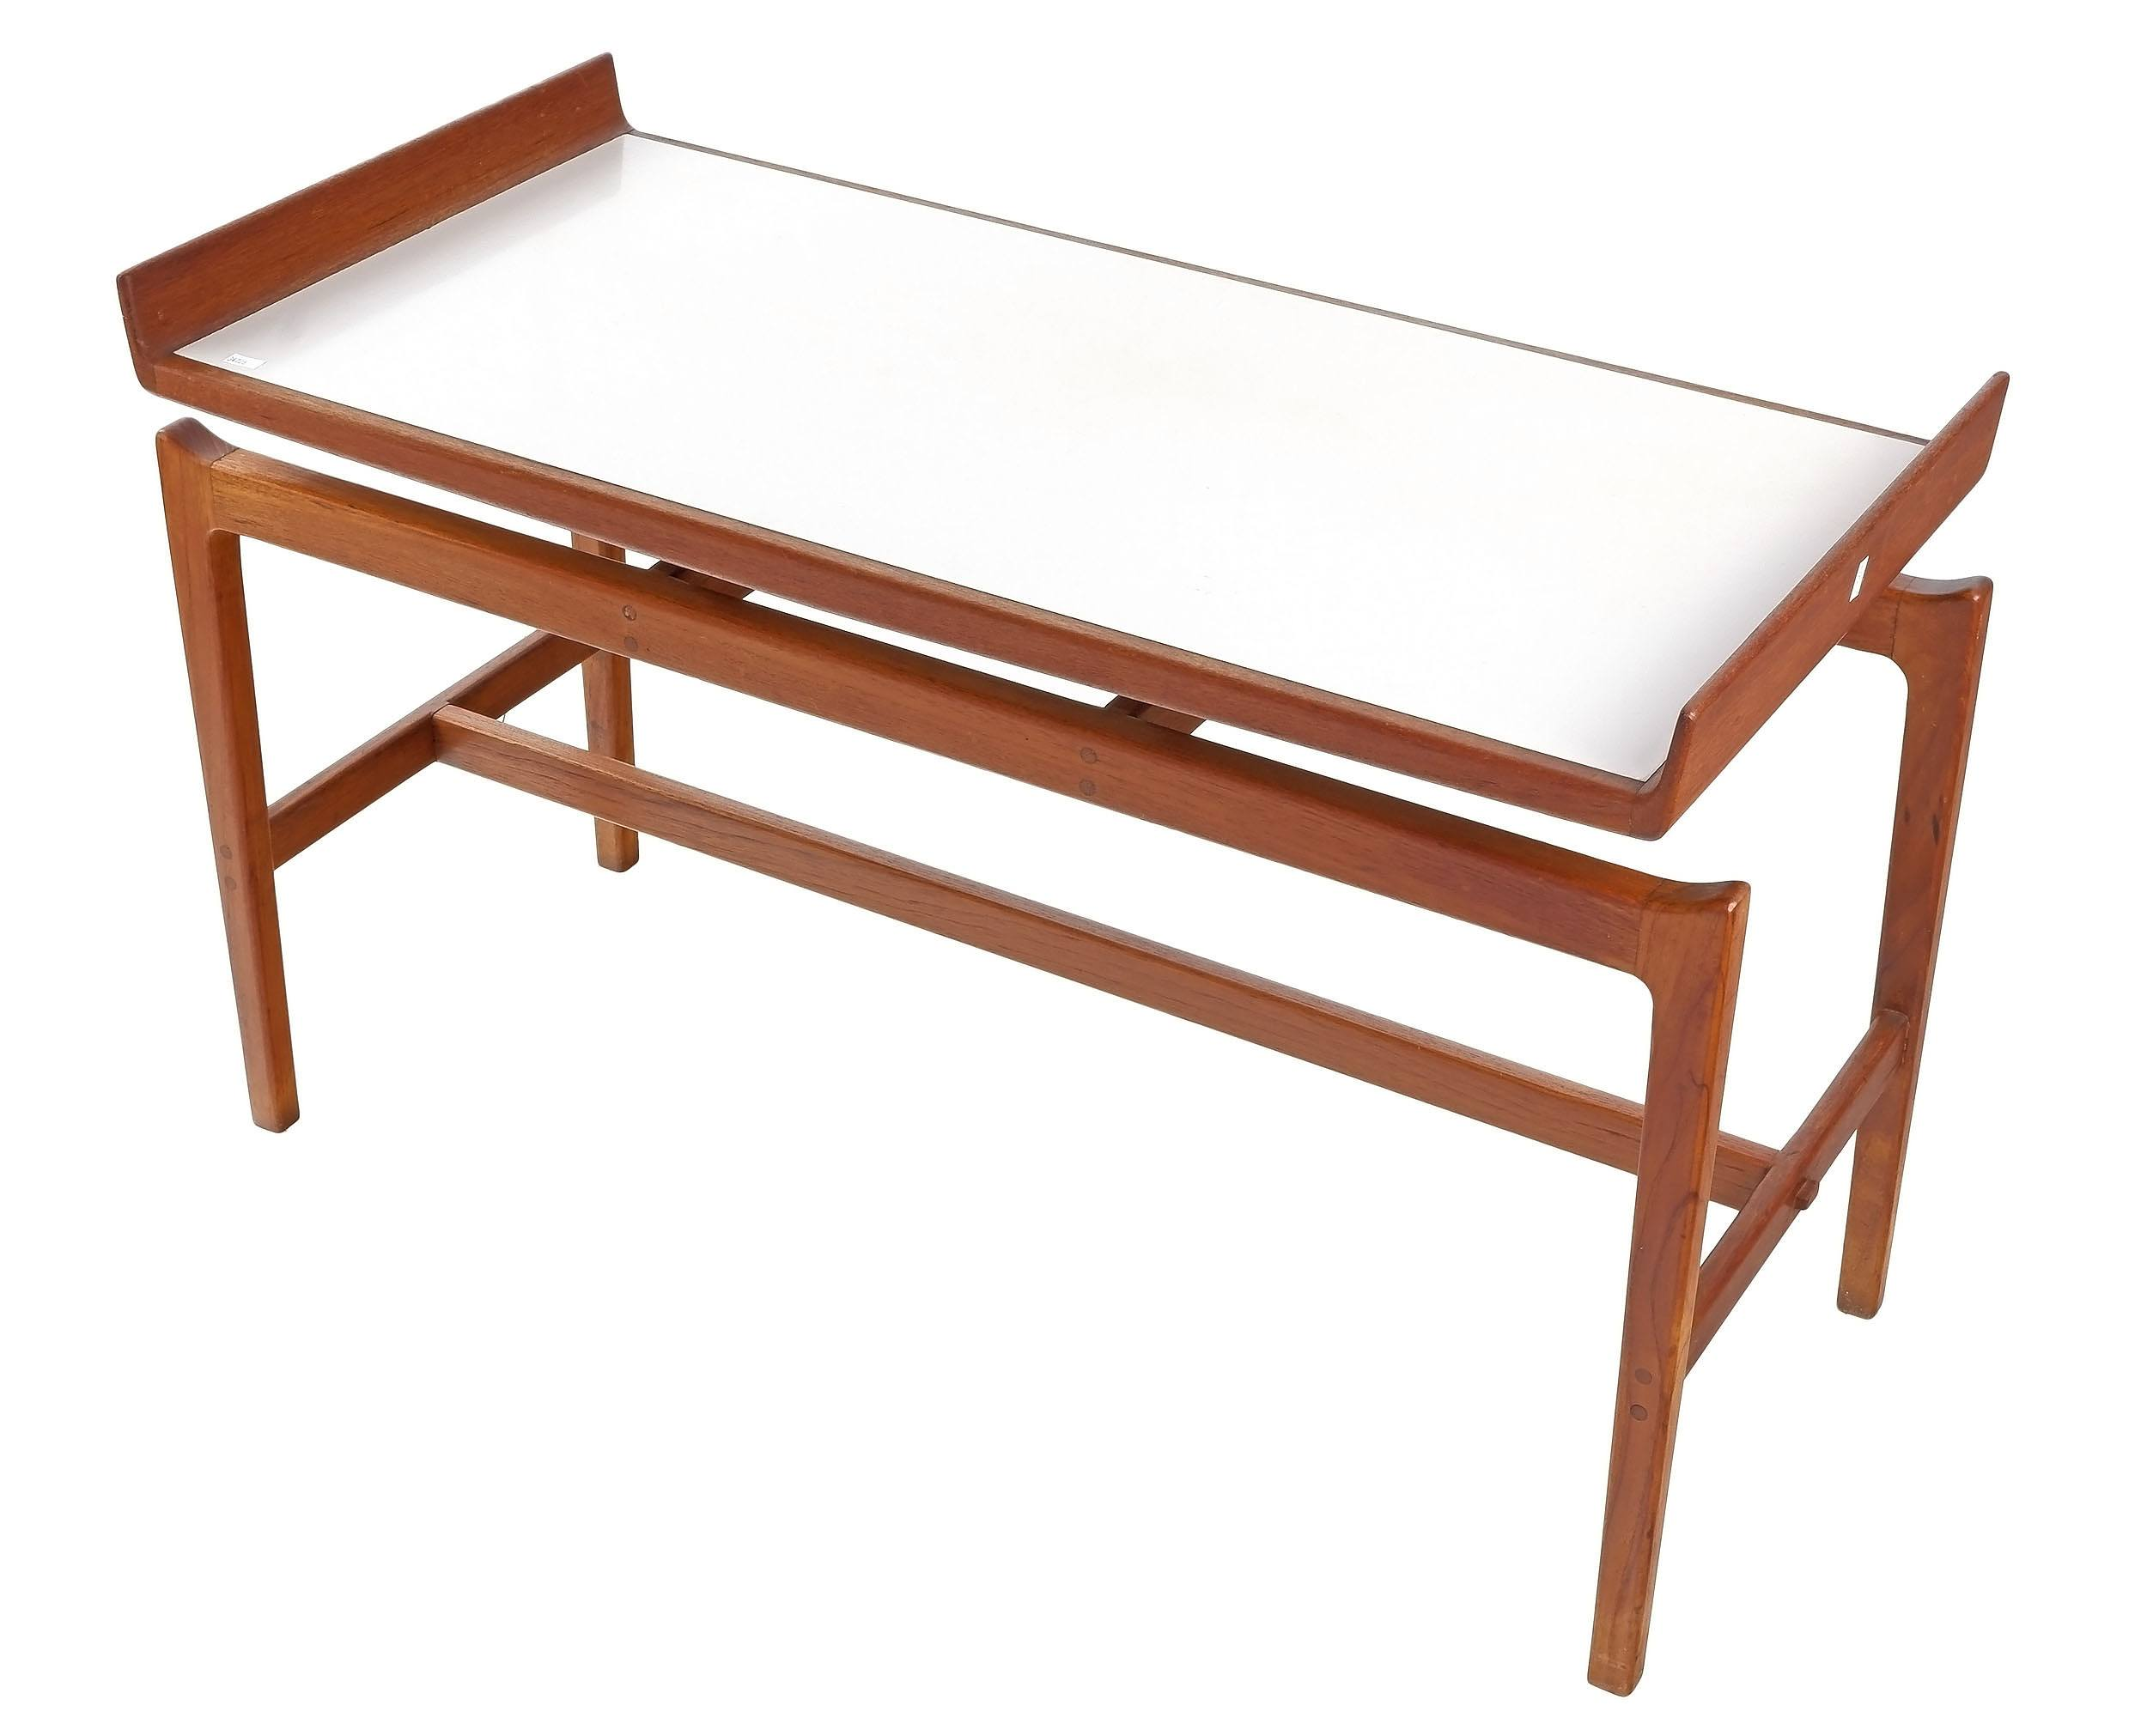 'Bespoke Teak Coffee Table with Floating Formica Top'